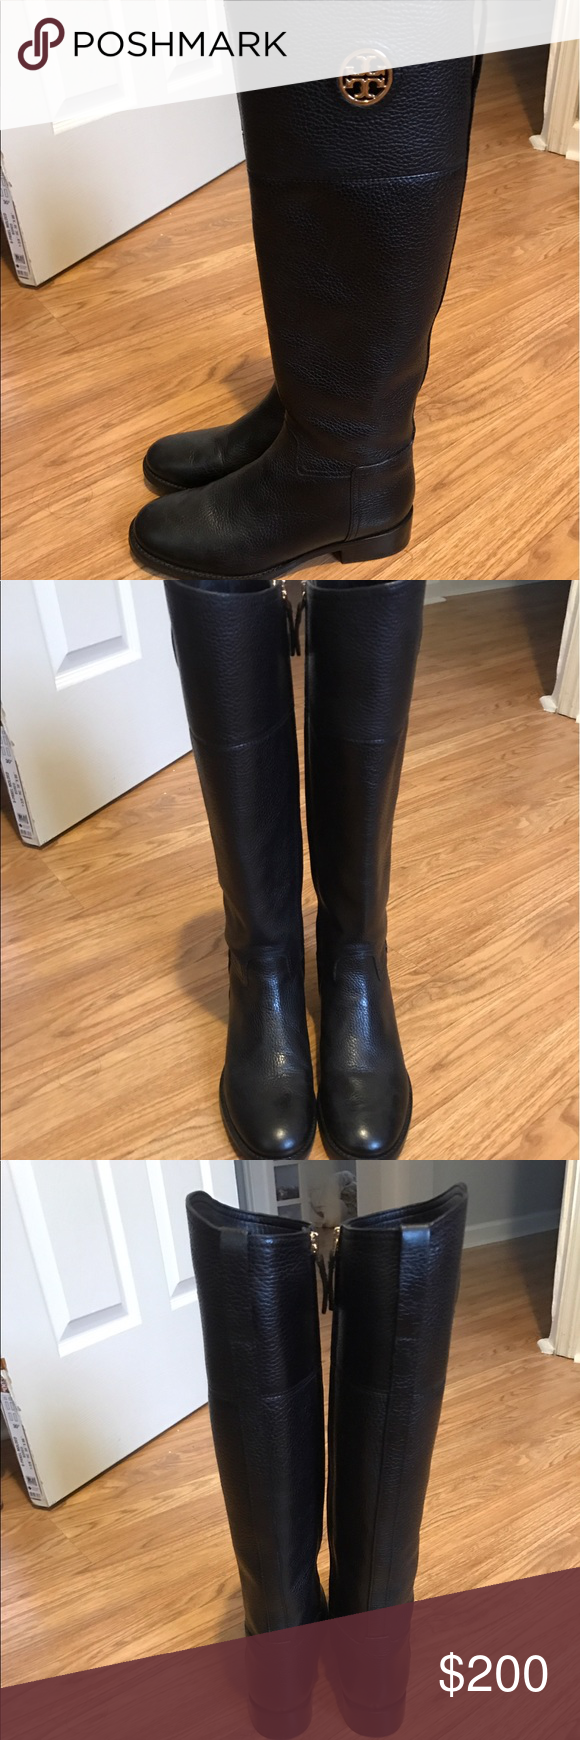 Tory Burch size 5 riding boots